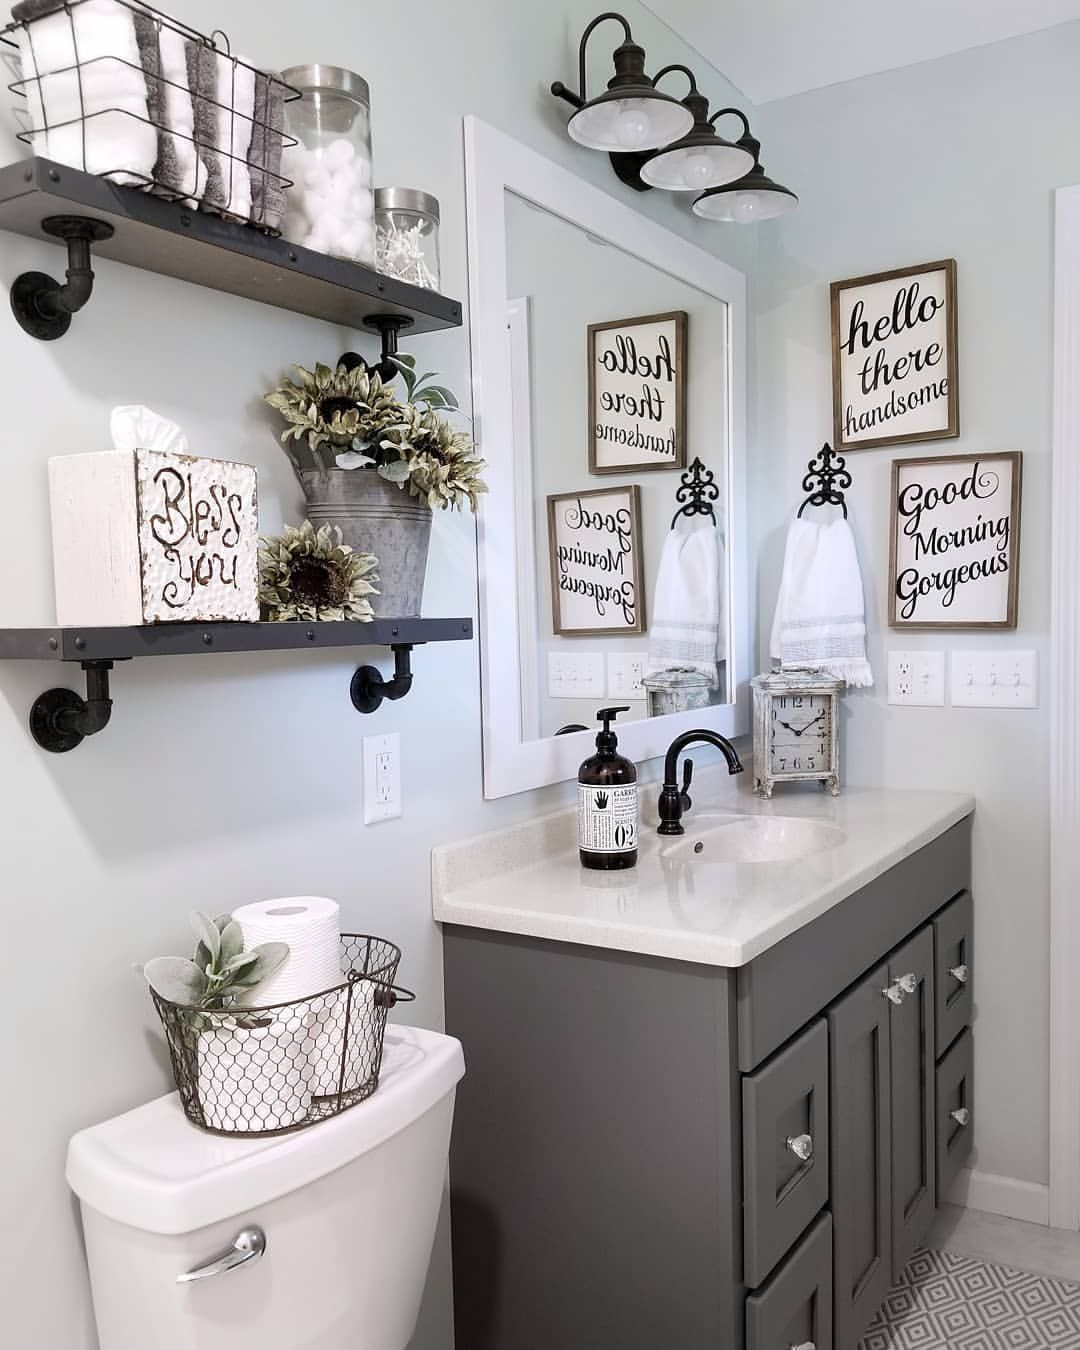 These Mirror Ideas Will Surely Be Useful In Making Your Bathroom Look Remarkable Keep Reading Bathro Small Bathroom Decor Restroom Decor Small Bathroom Diy